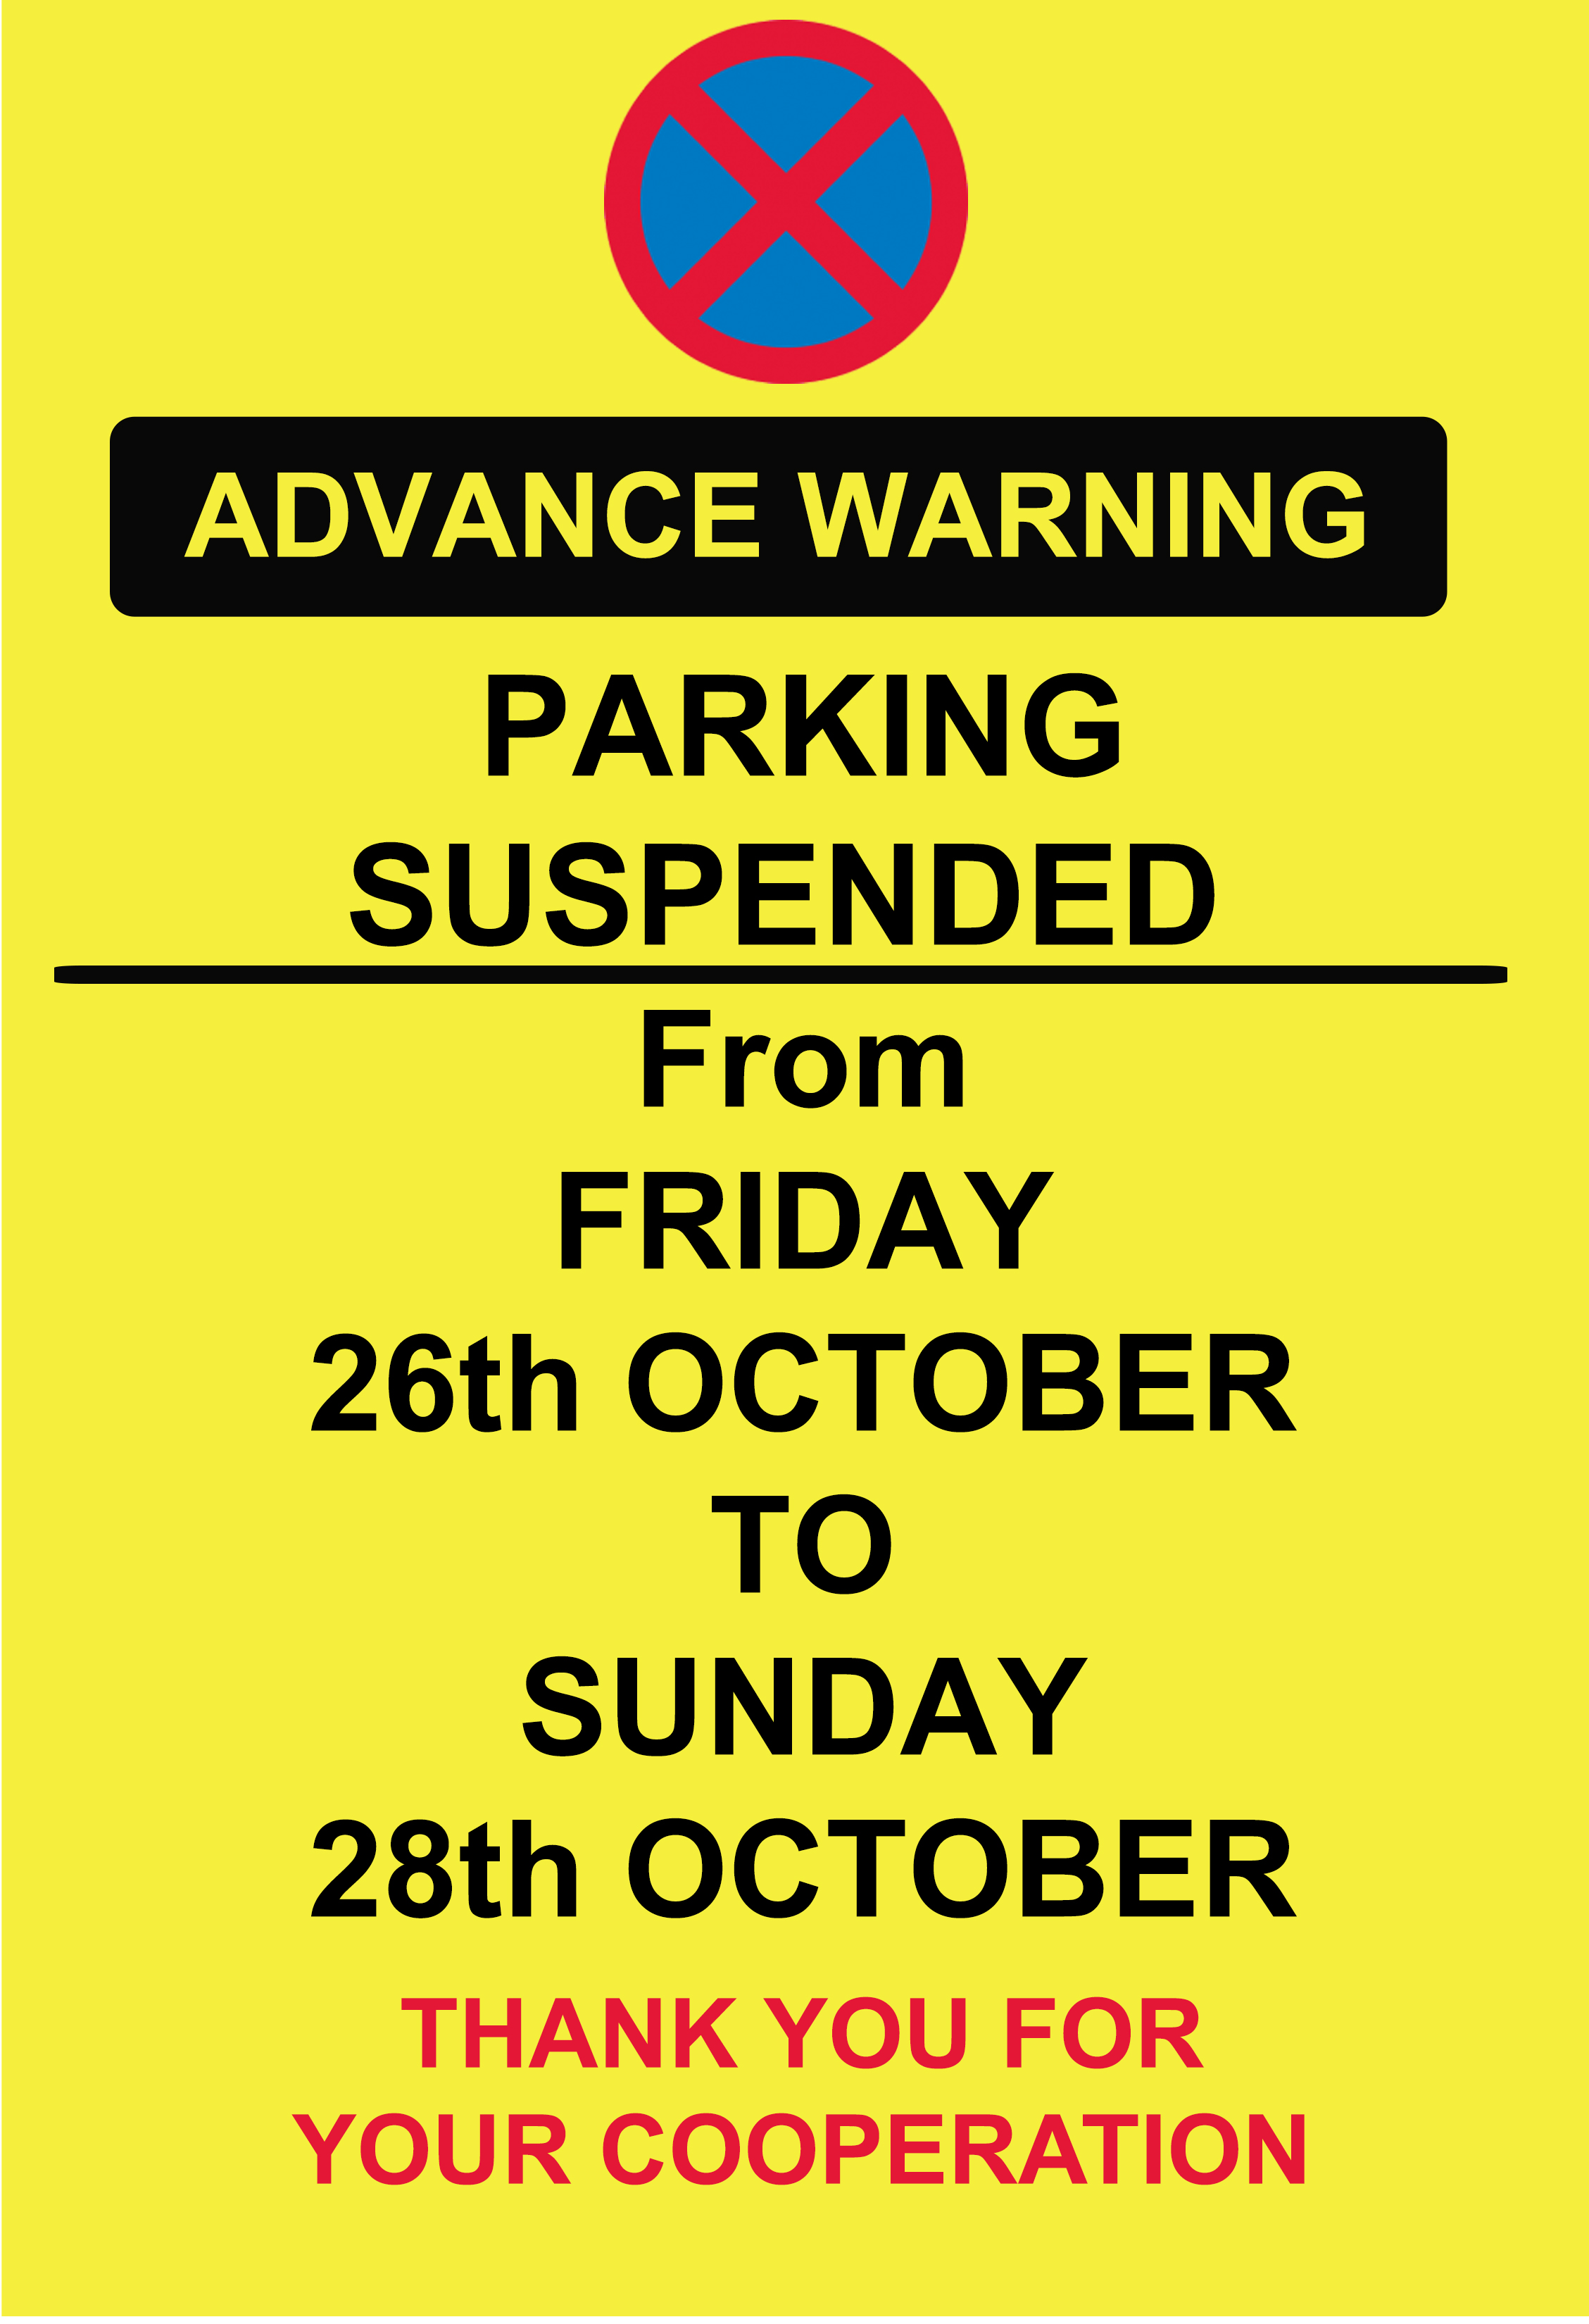 A2 ADVANCE WARNING PARKING MAGIC HOUR ps